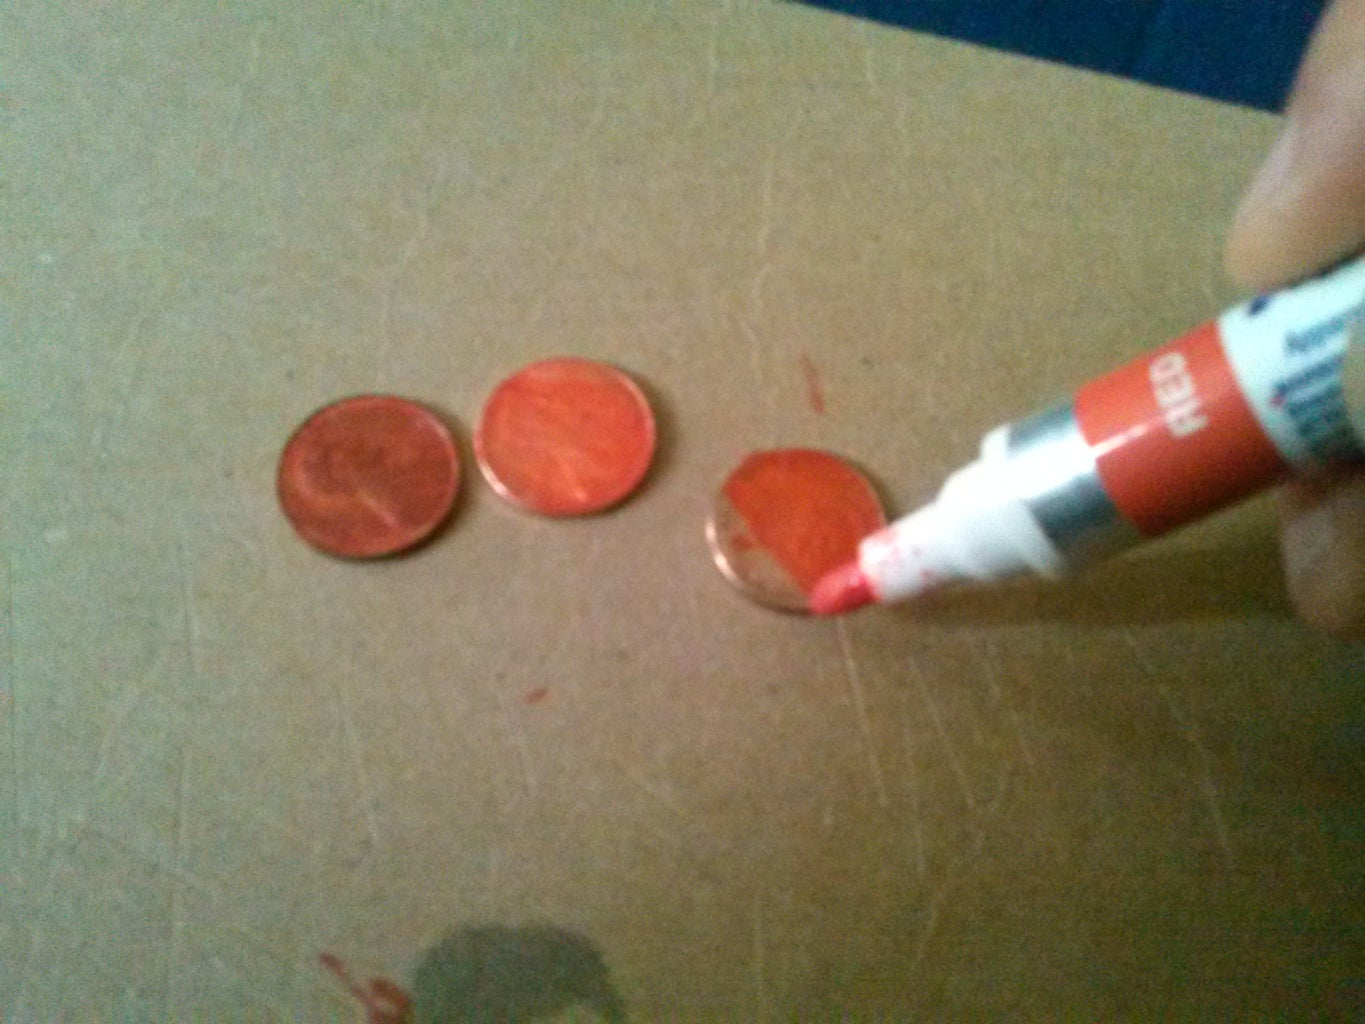 I Used a Red Paint Marker and Here Are the Pictures and Some Comparisons of Normal and Red Pennies.